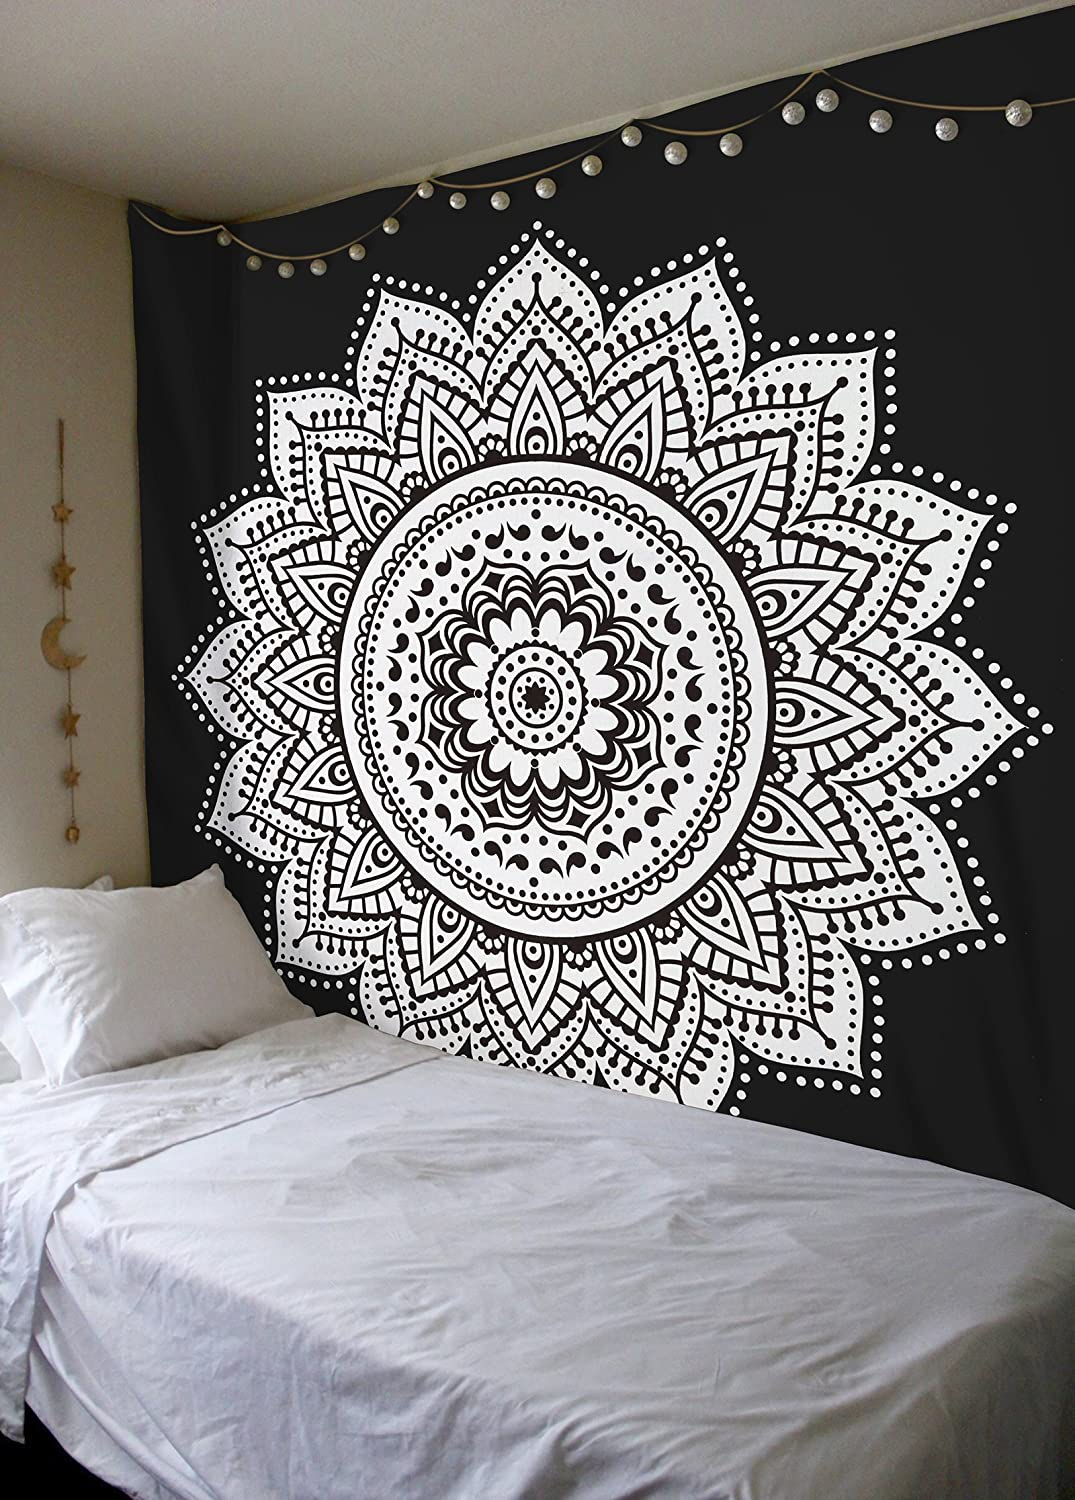 amazoncom ombre mandala tapestry black and white indianhindu wall hanging 100 cotton bohemian wall decor by home u0026 kitchen